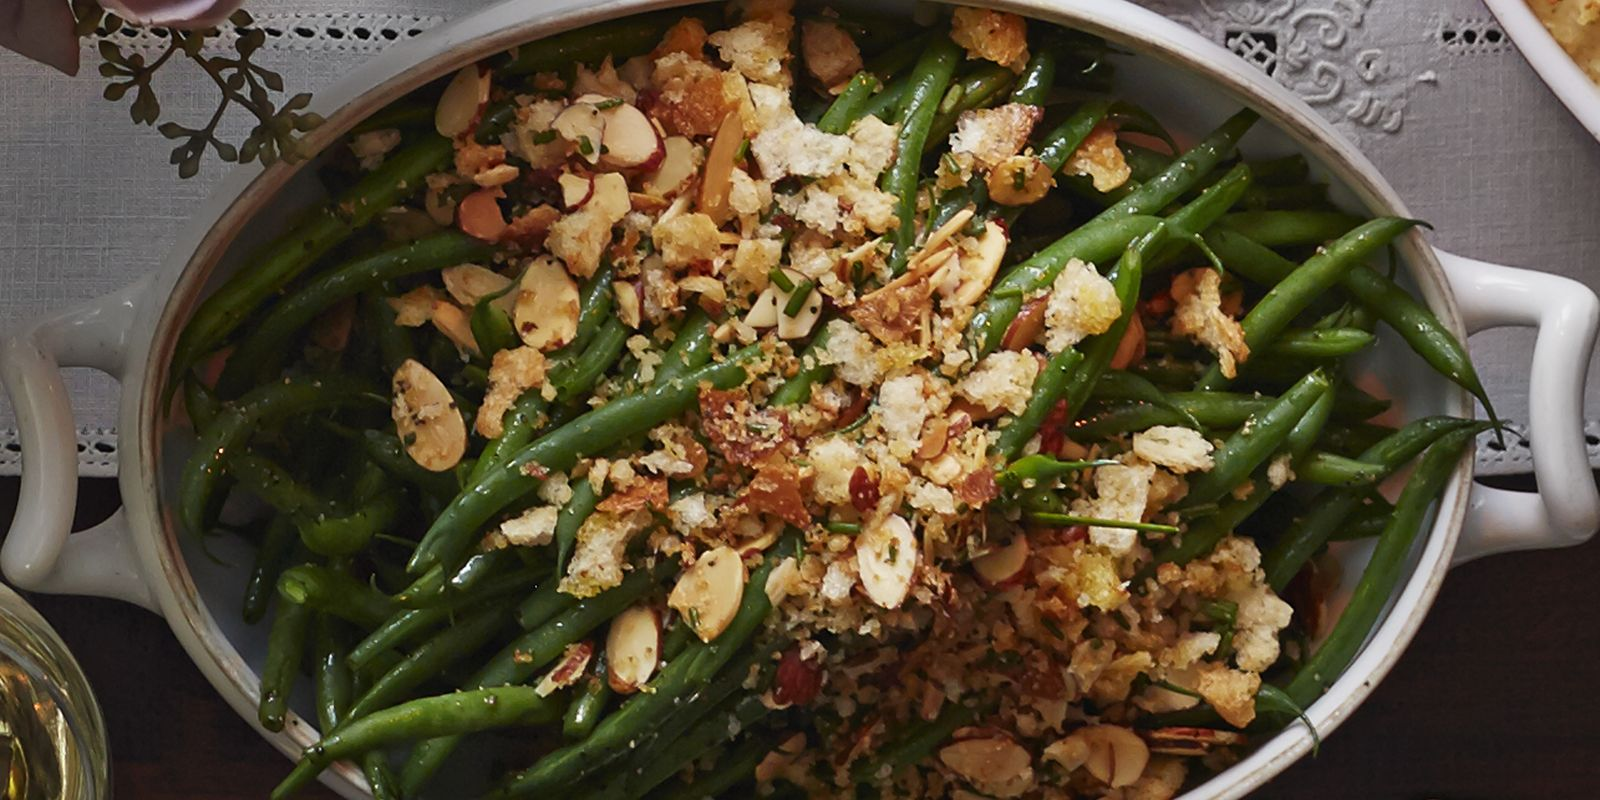 French Green Beans with Garlicky Almond Breadcrumbs Recipe